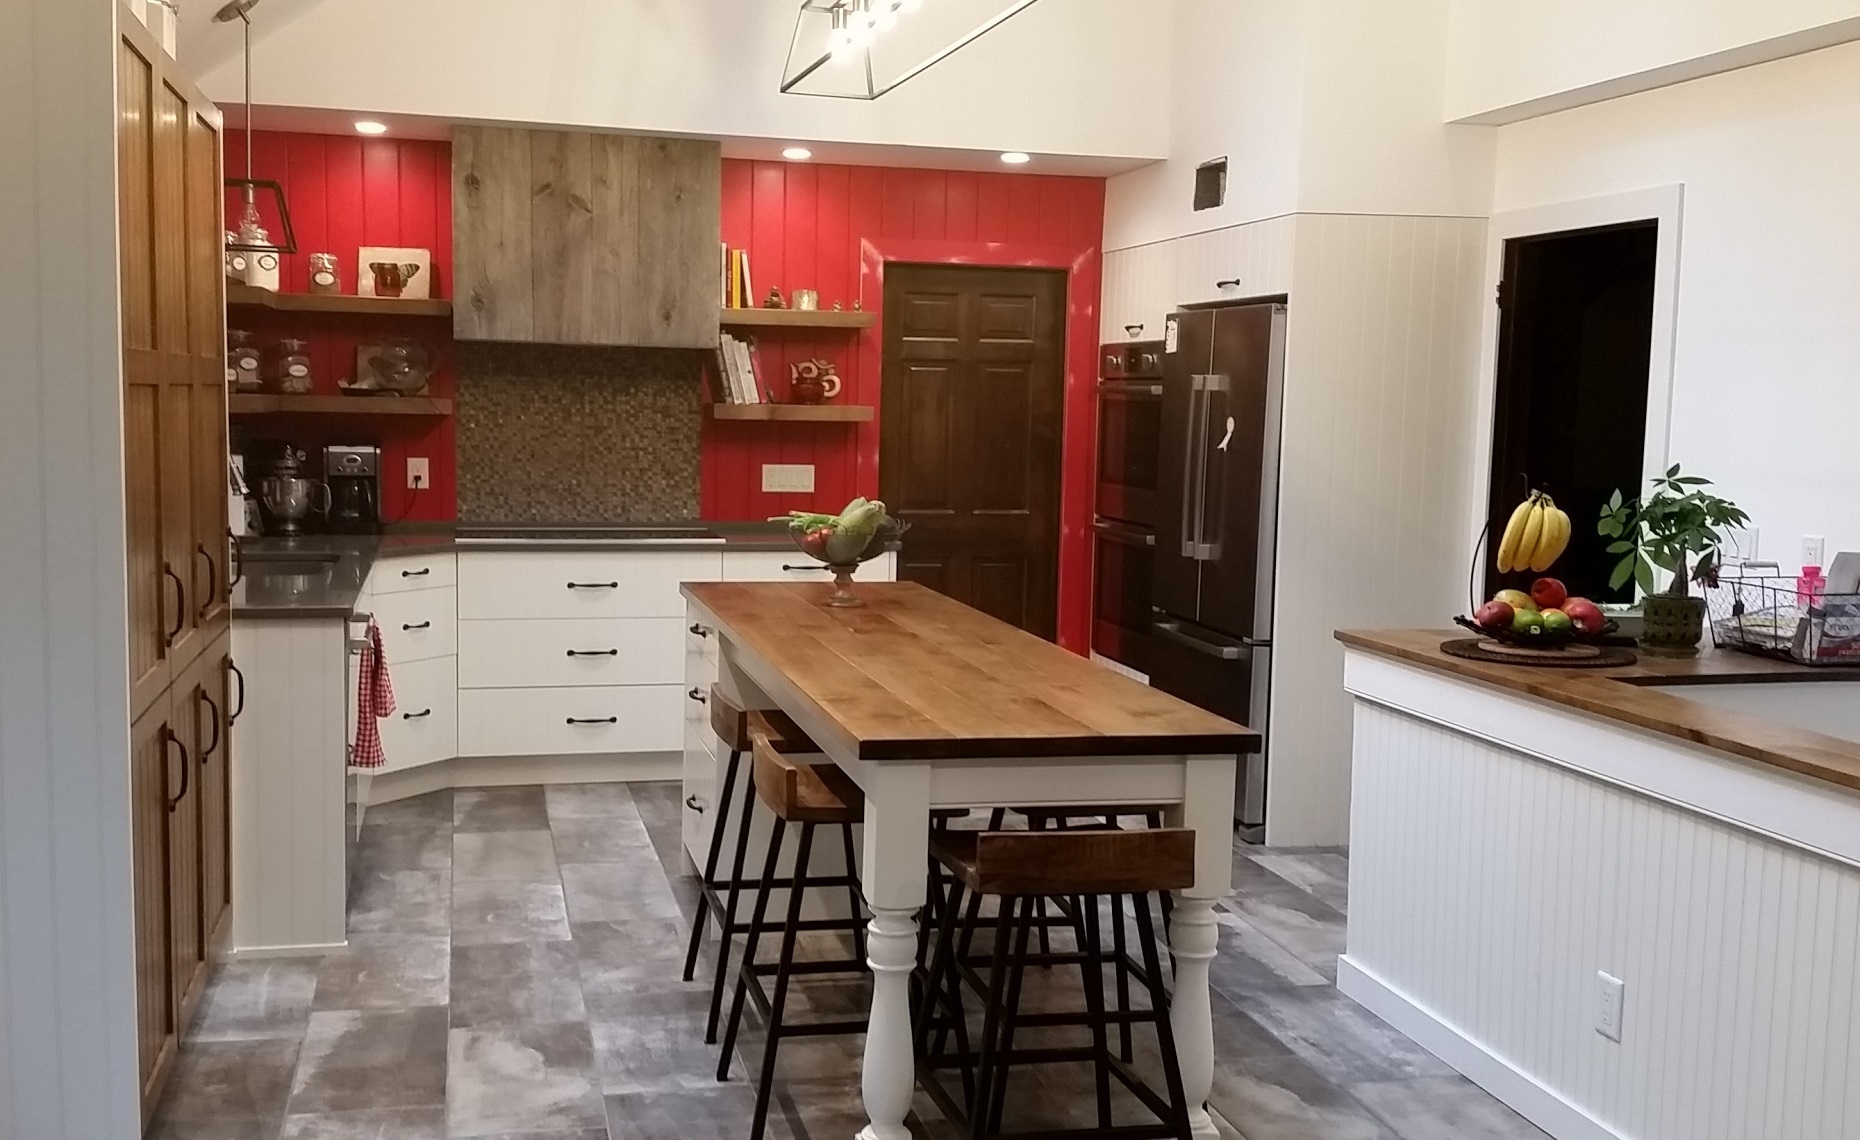 custom kitchen cabinets- mercer county, nj-by birdie miller-country style